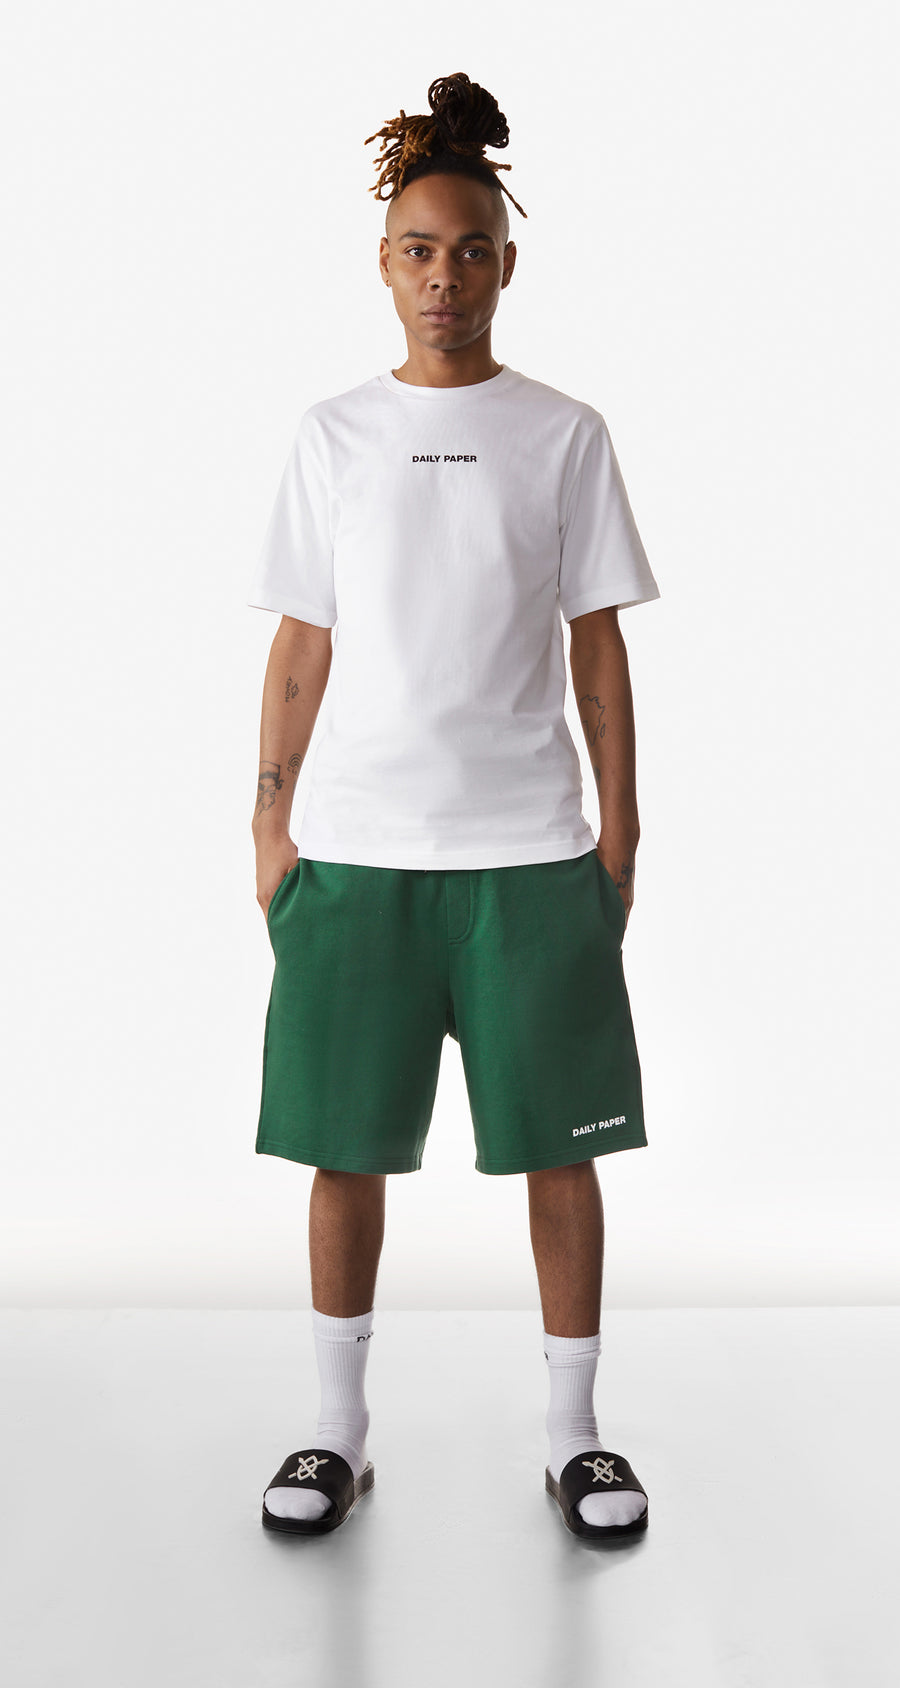 Daily Paper - Pineneedle Green Refarid Shorts - Men Rear